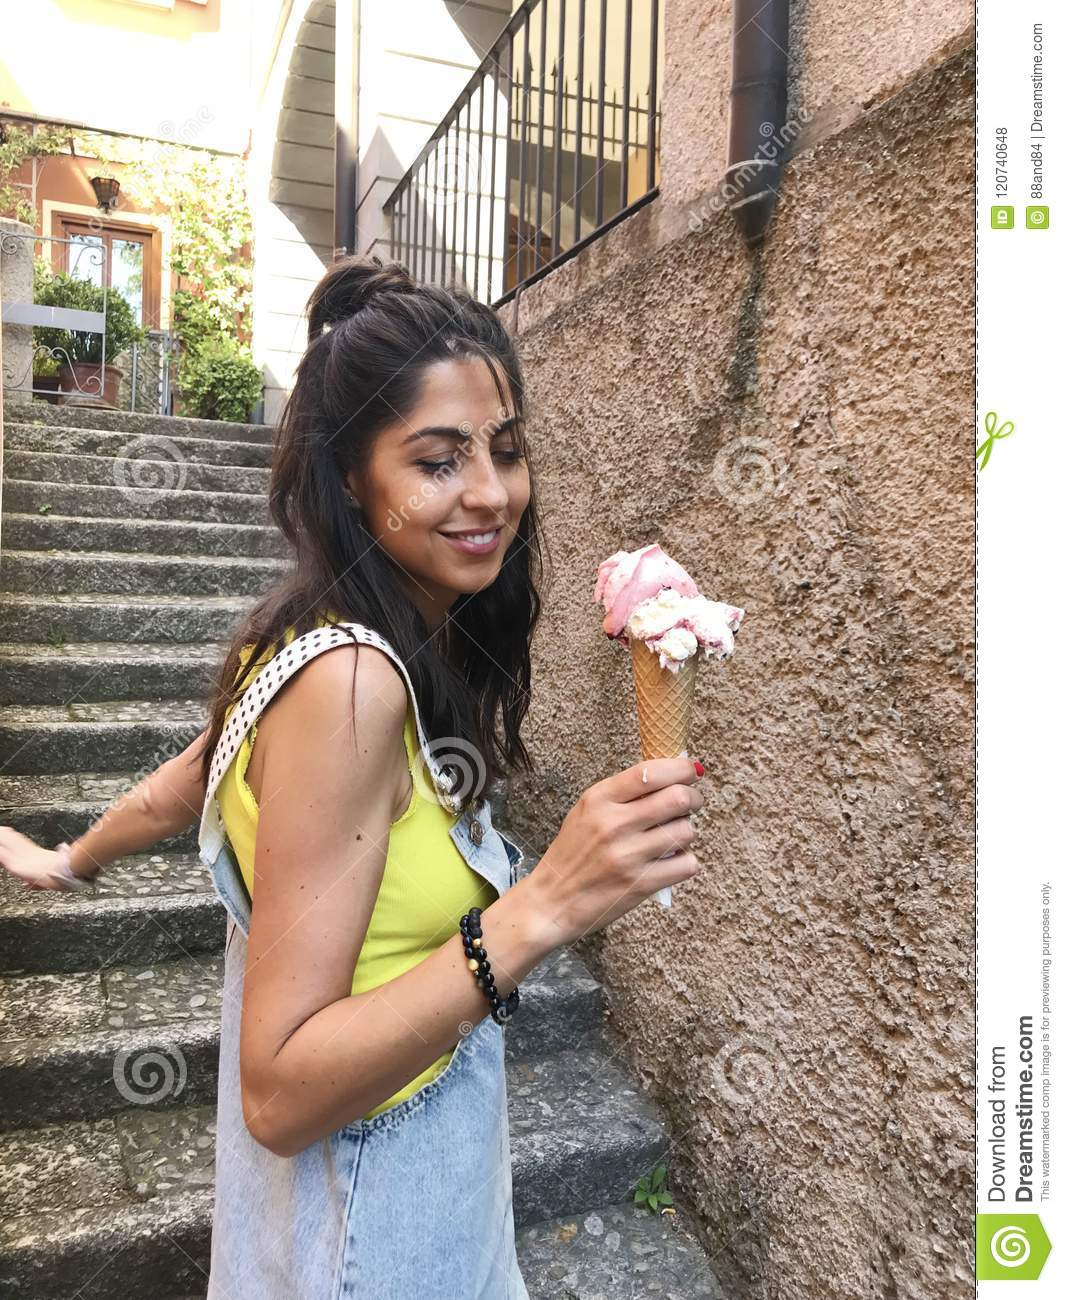 Woman Eating Ice Cream in Italy